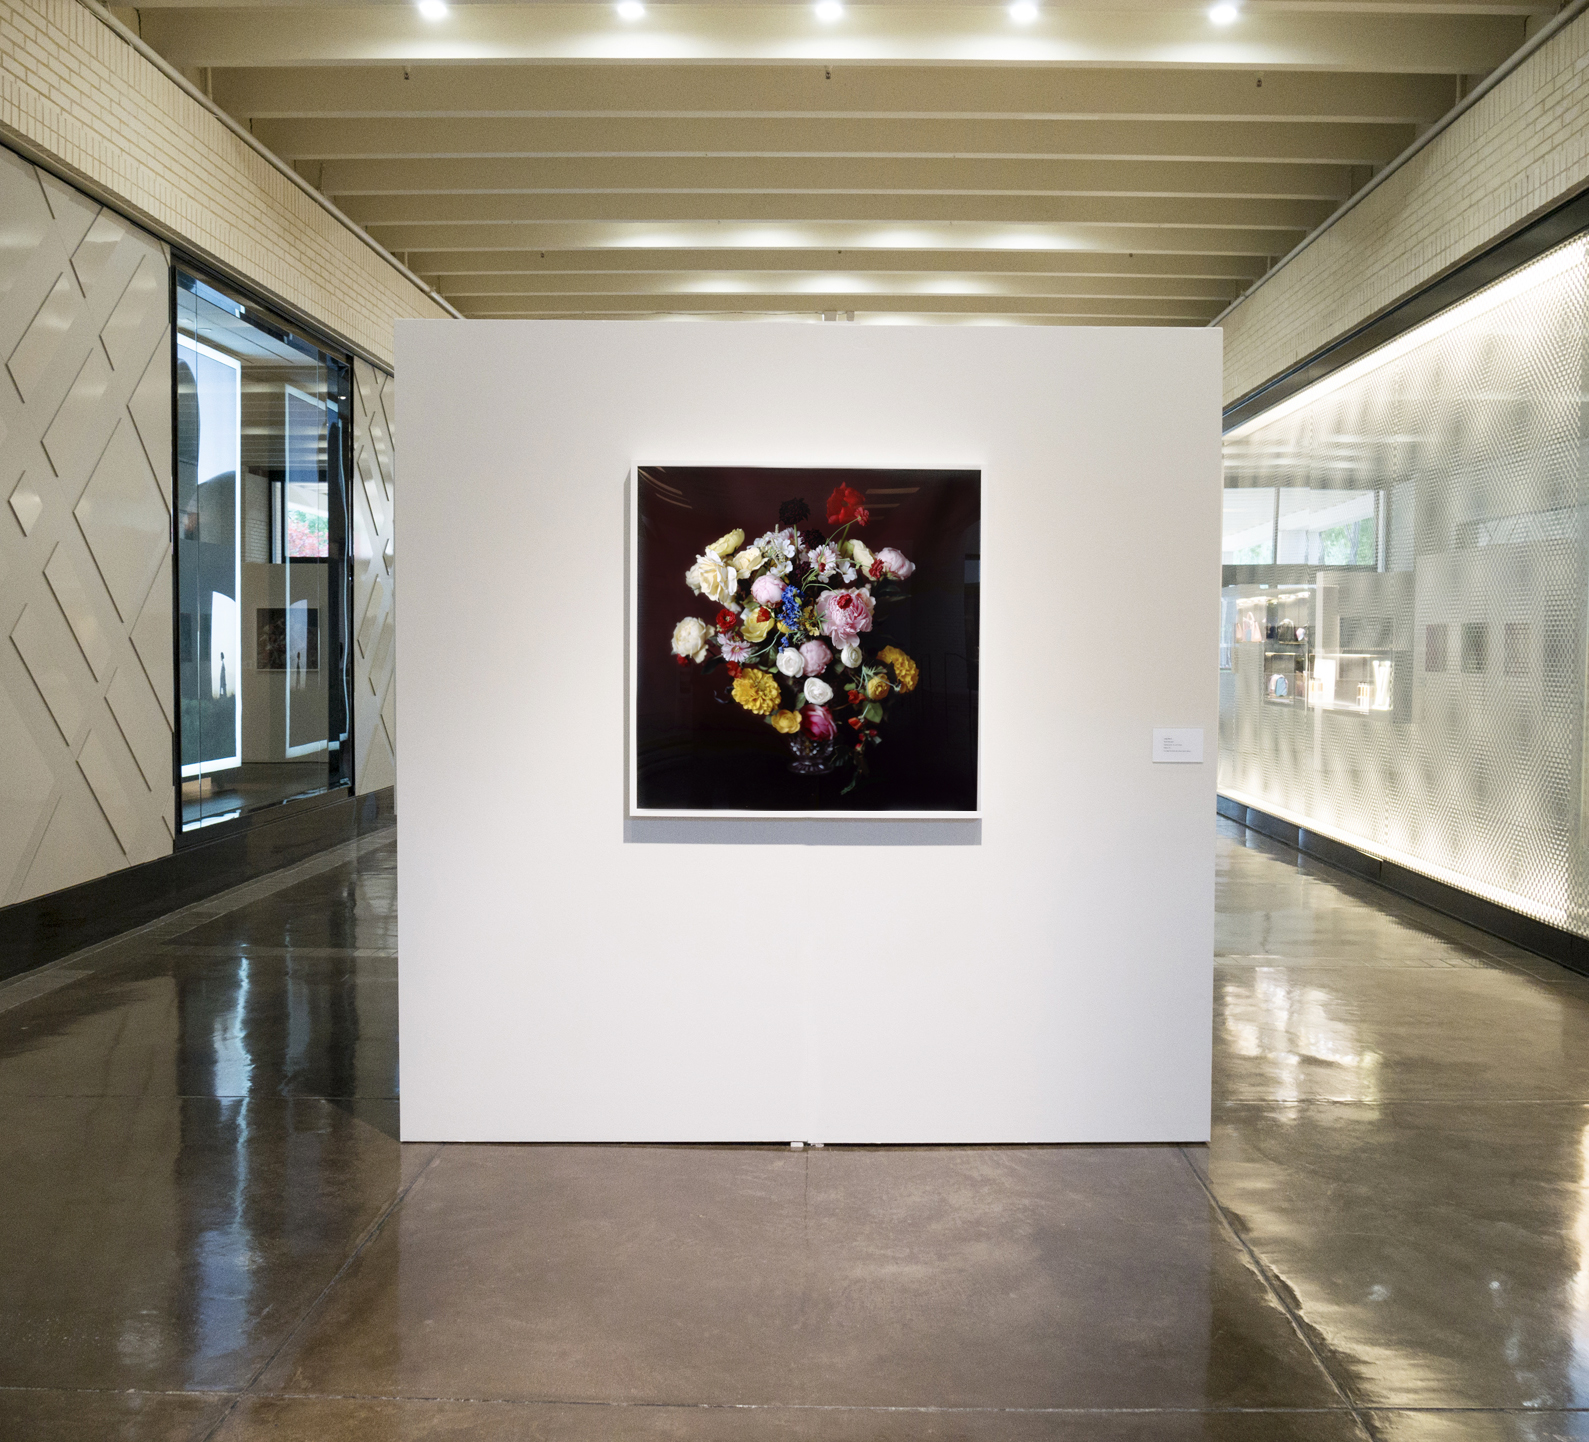 Installation view,  Brown Bouquet  in  Flower Power  exhibition at NorthPark, Dallas, TX, 2017